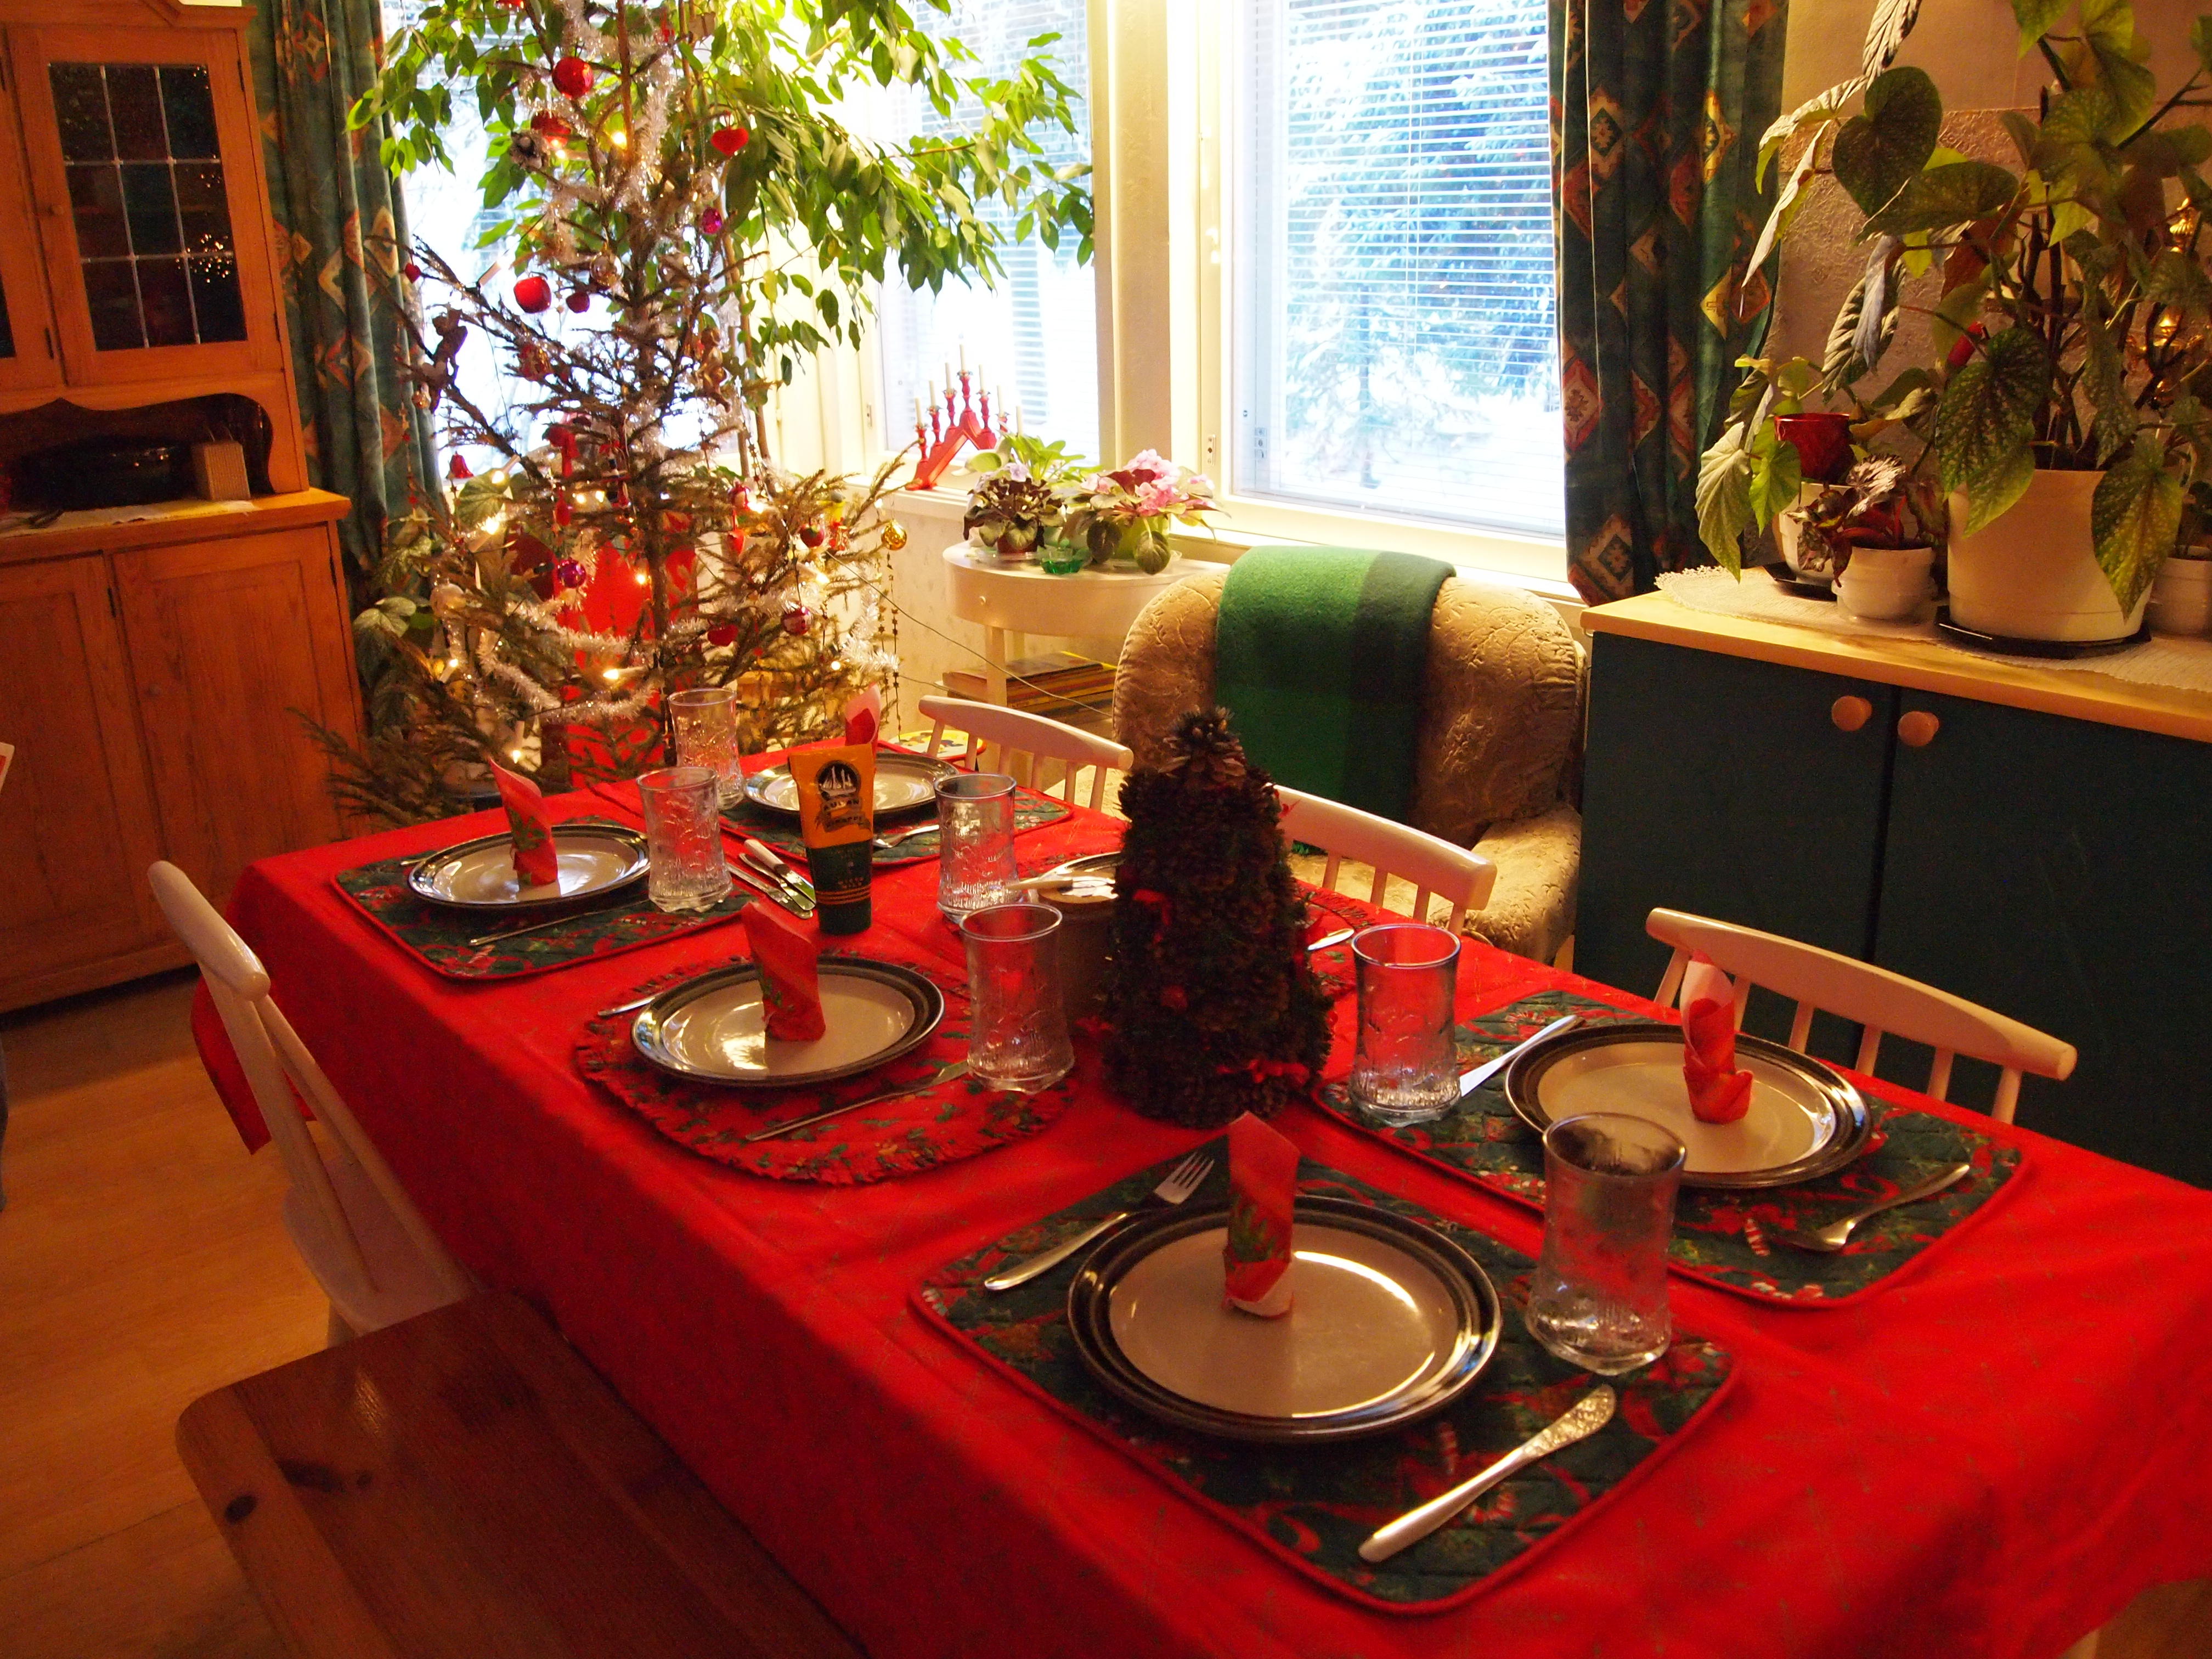 File:Christmas dinner table (5300036540).jpg